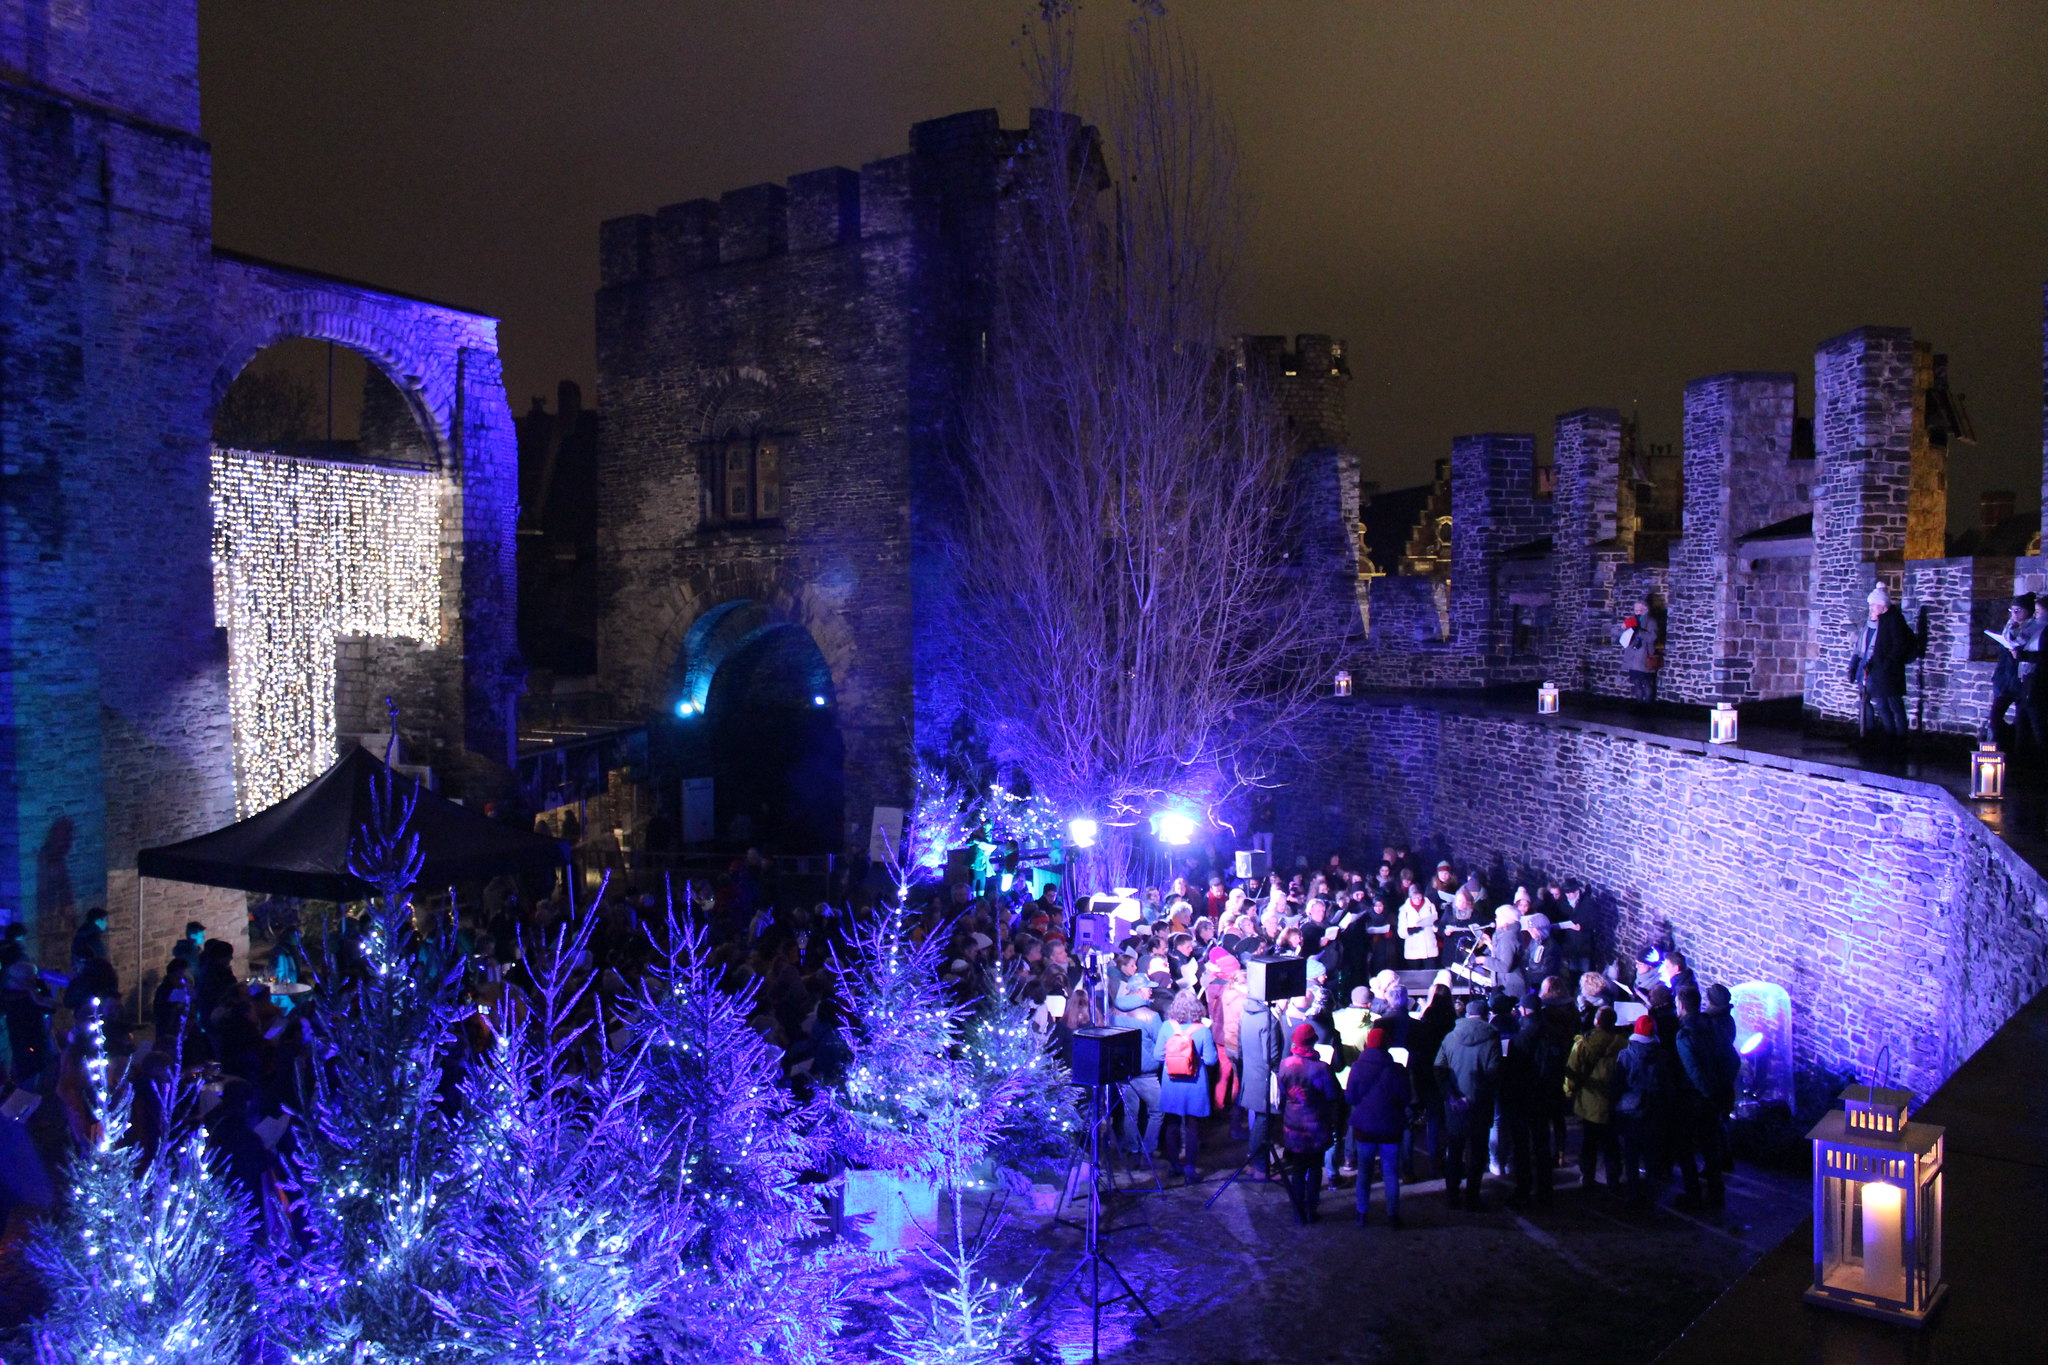 Ghent Winter at Gravensteen Castle